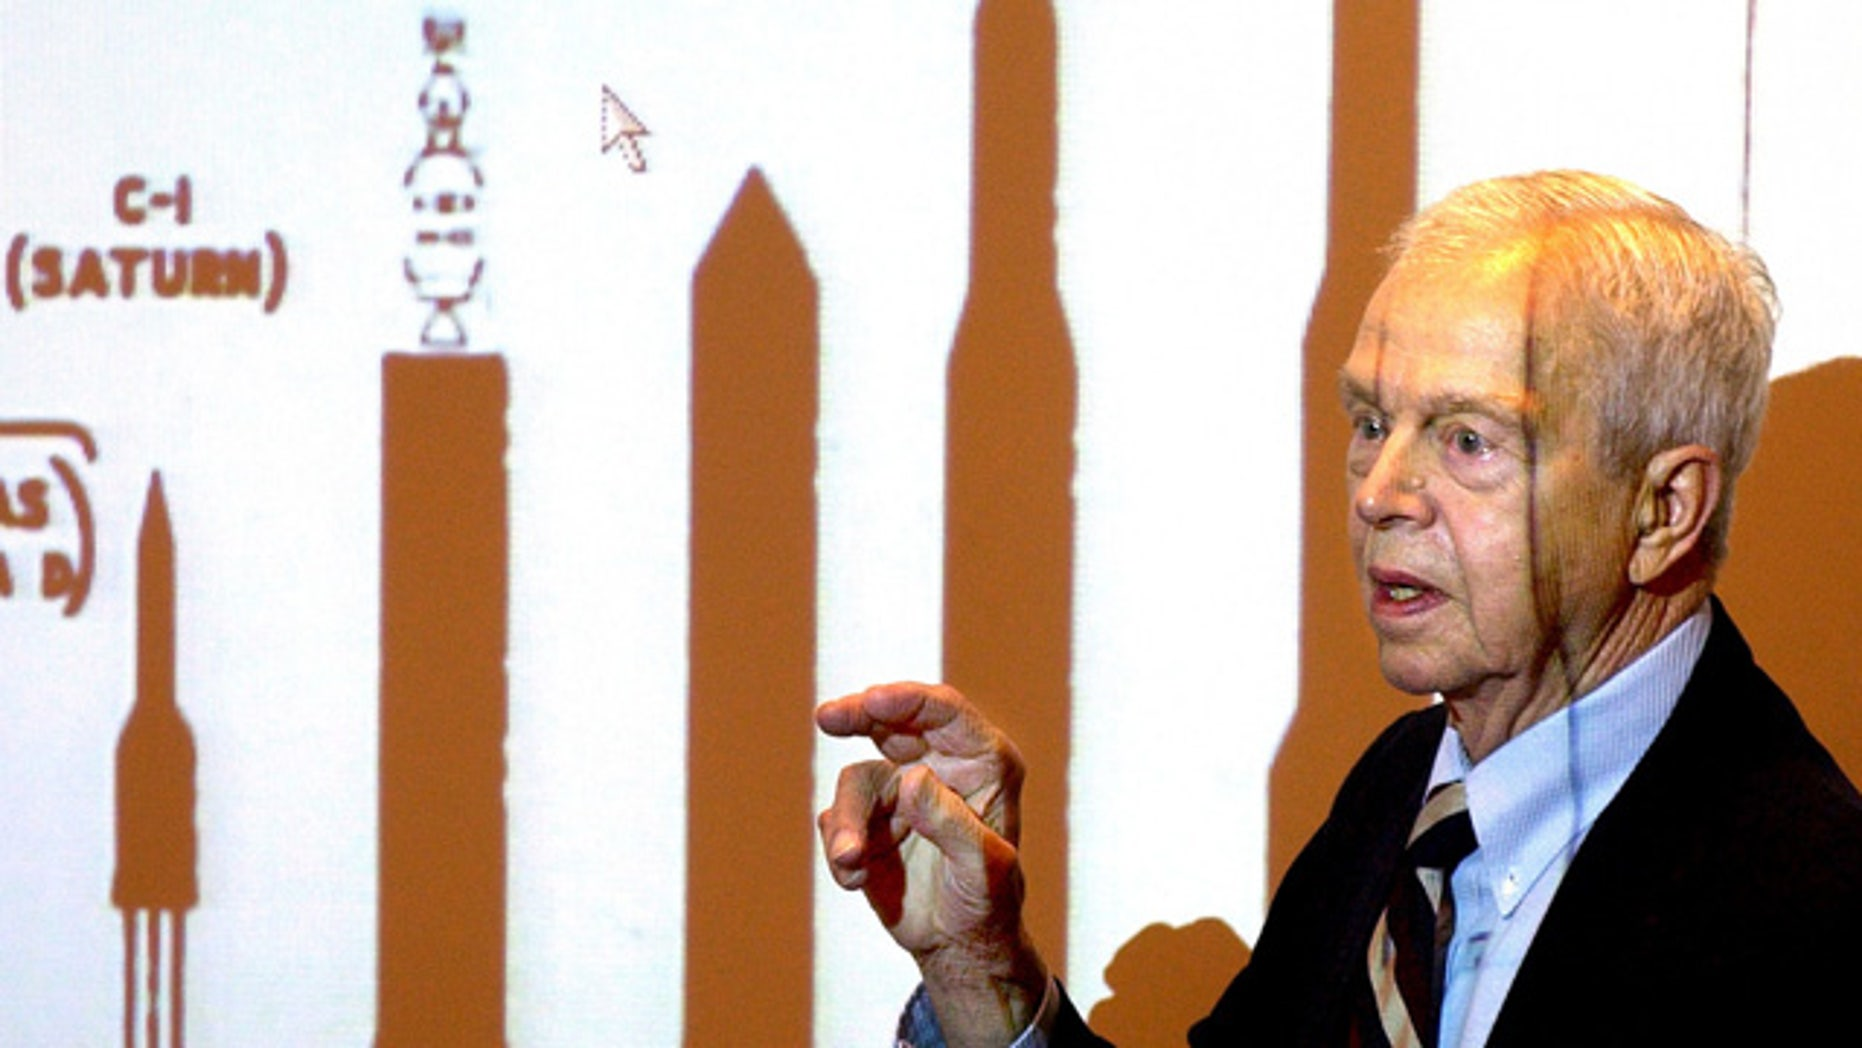 File-This Oct. 9, 2003, file photo shows John C. Houbolt explaining the size of different rockets required to launch various methods for landing on the moon at Grainger Engineering Library in Urbana, Ill. (AP Photo/News-Gazette, John Dixon, File)